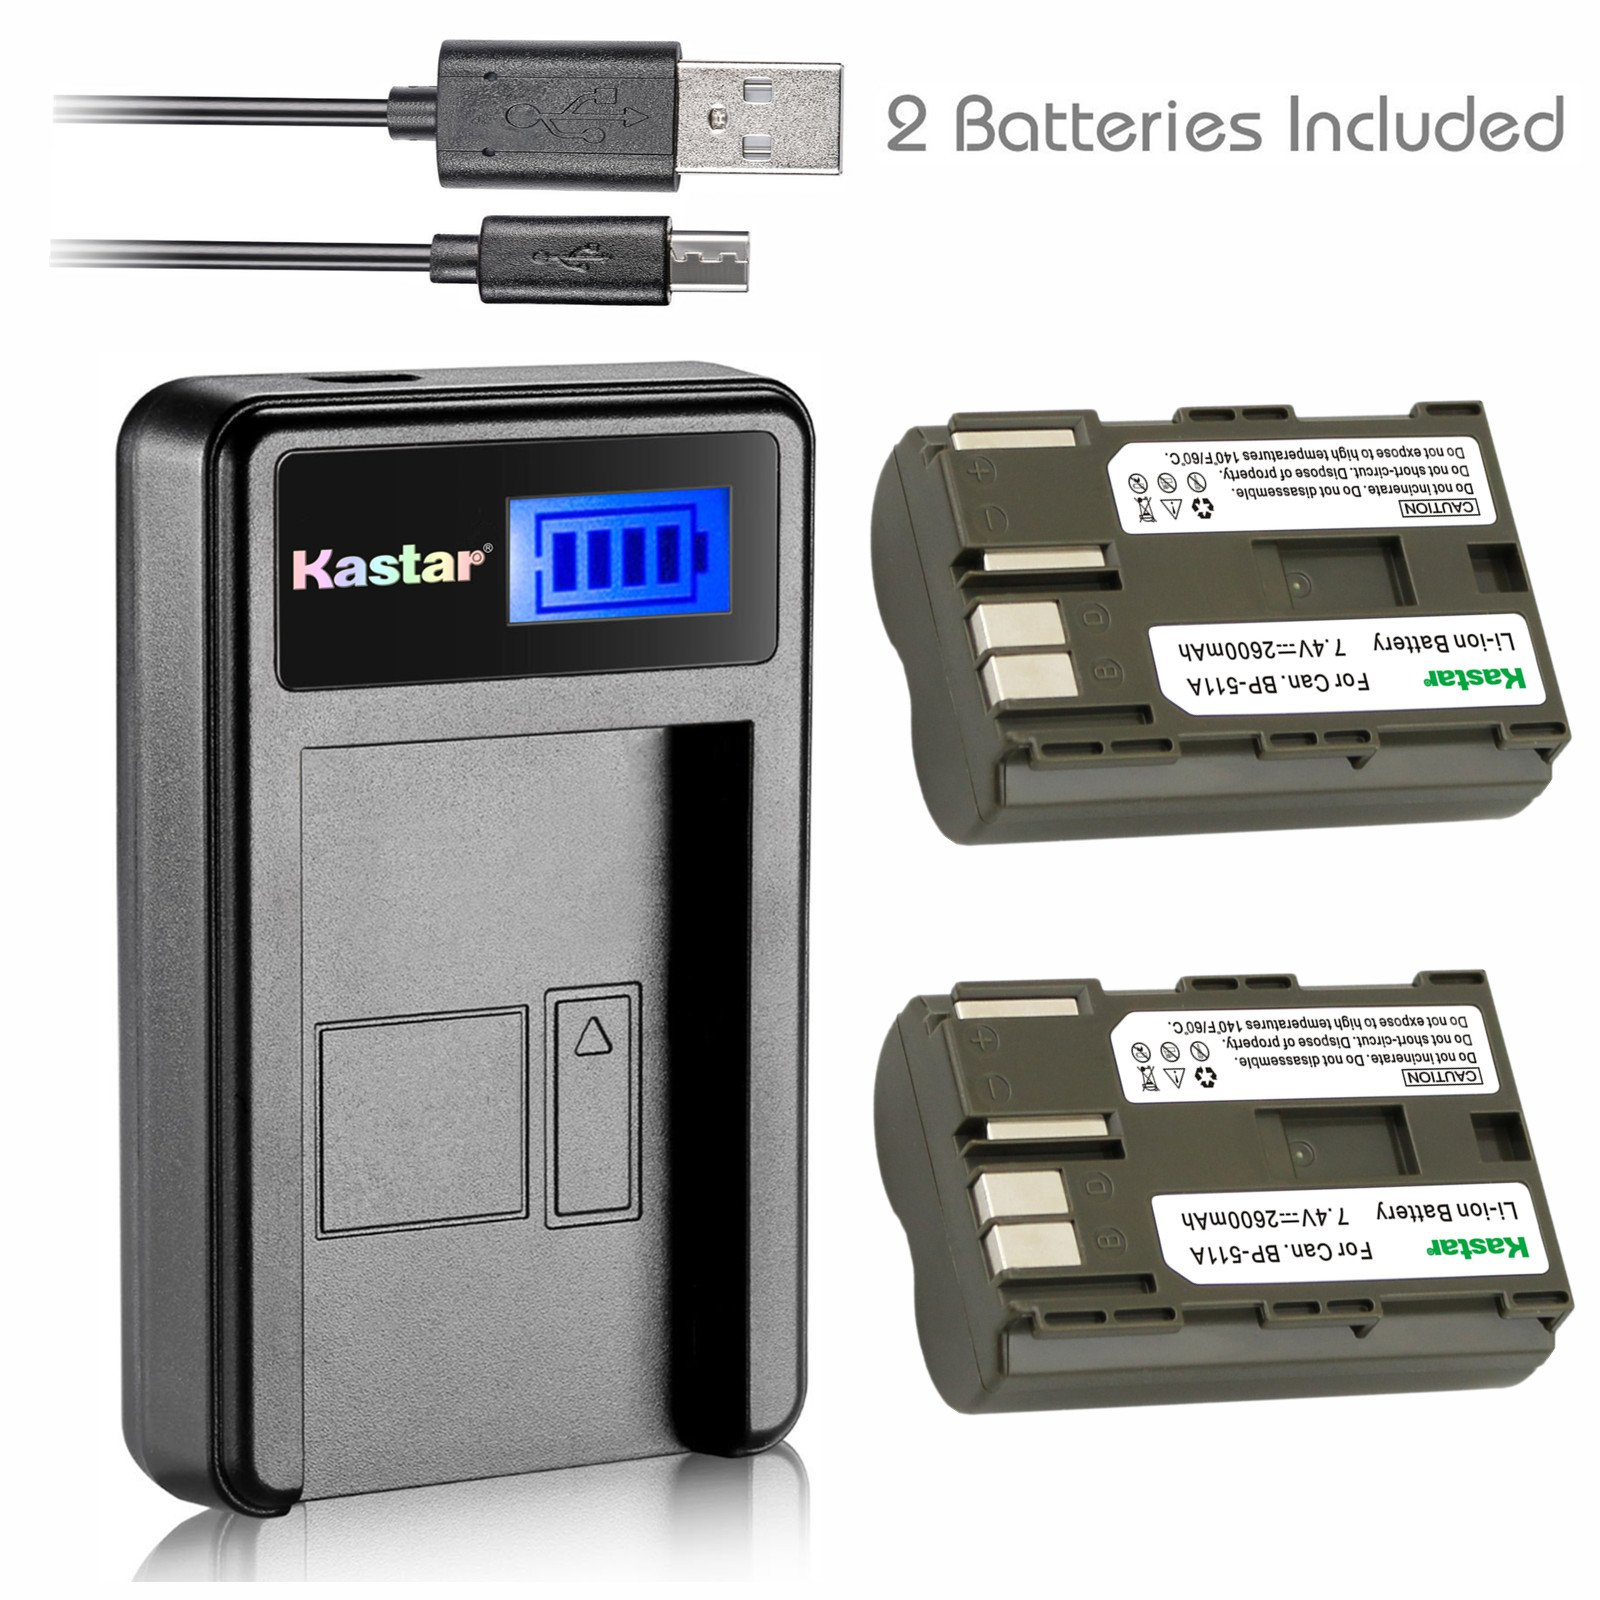 Kastar Battery (X2) & LCD Slim USB Charger for Canon BP-511 BP-511A and EOS 5D 10D 20D 30D 40D 50D Digital Rebel 1D D60 300D D30 Kiss Powershot G5 Pro 1 G2 G3 G6 G1 Pro90 Optura 20, Grip BG-E2N by Kastar (Image #1)